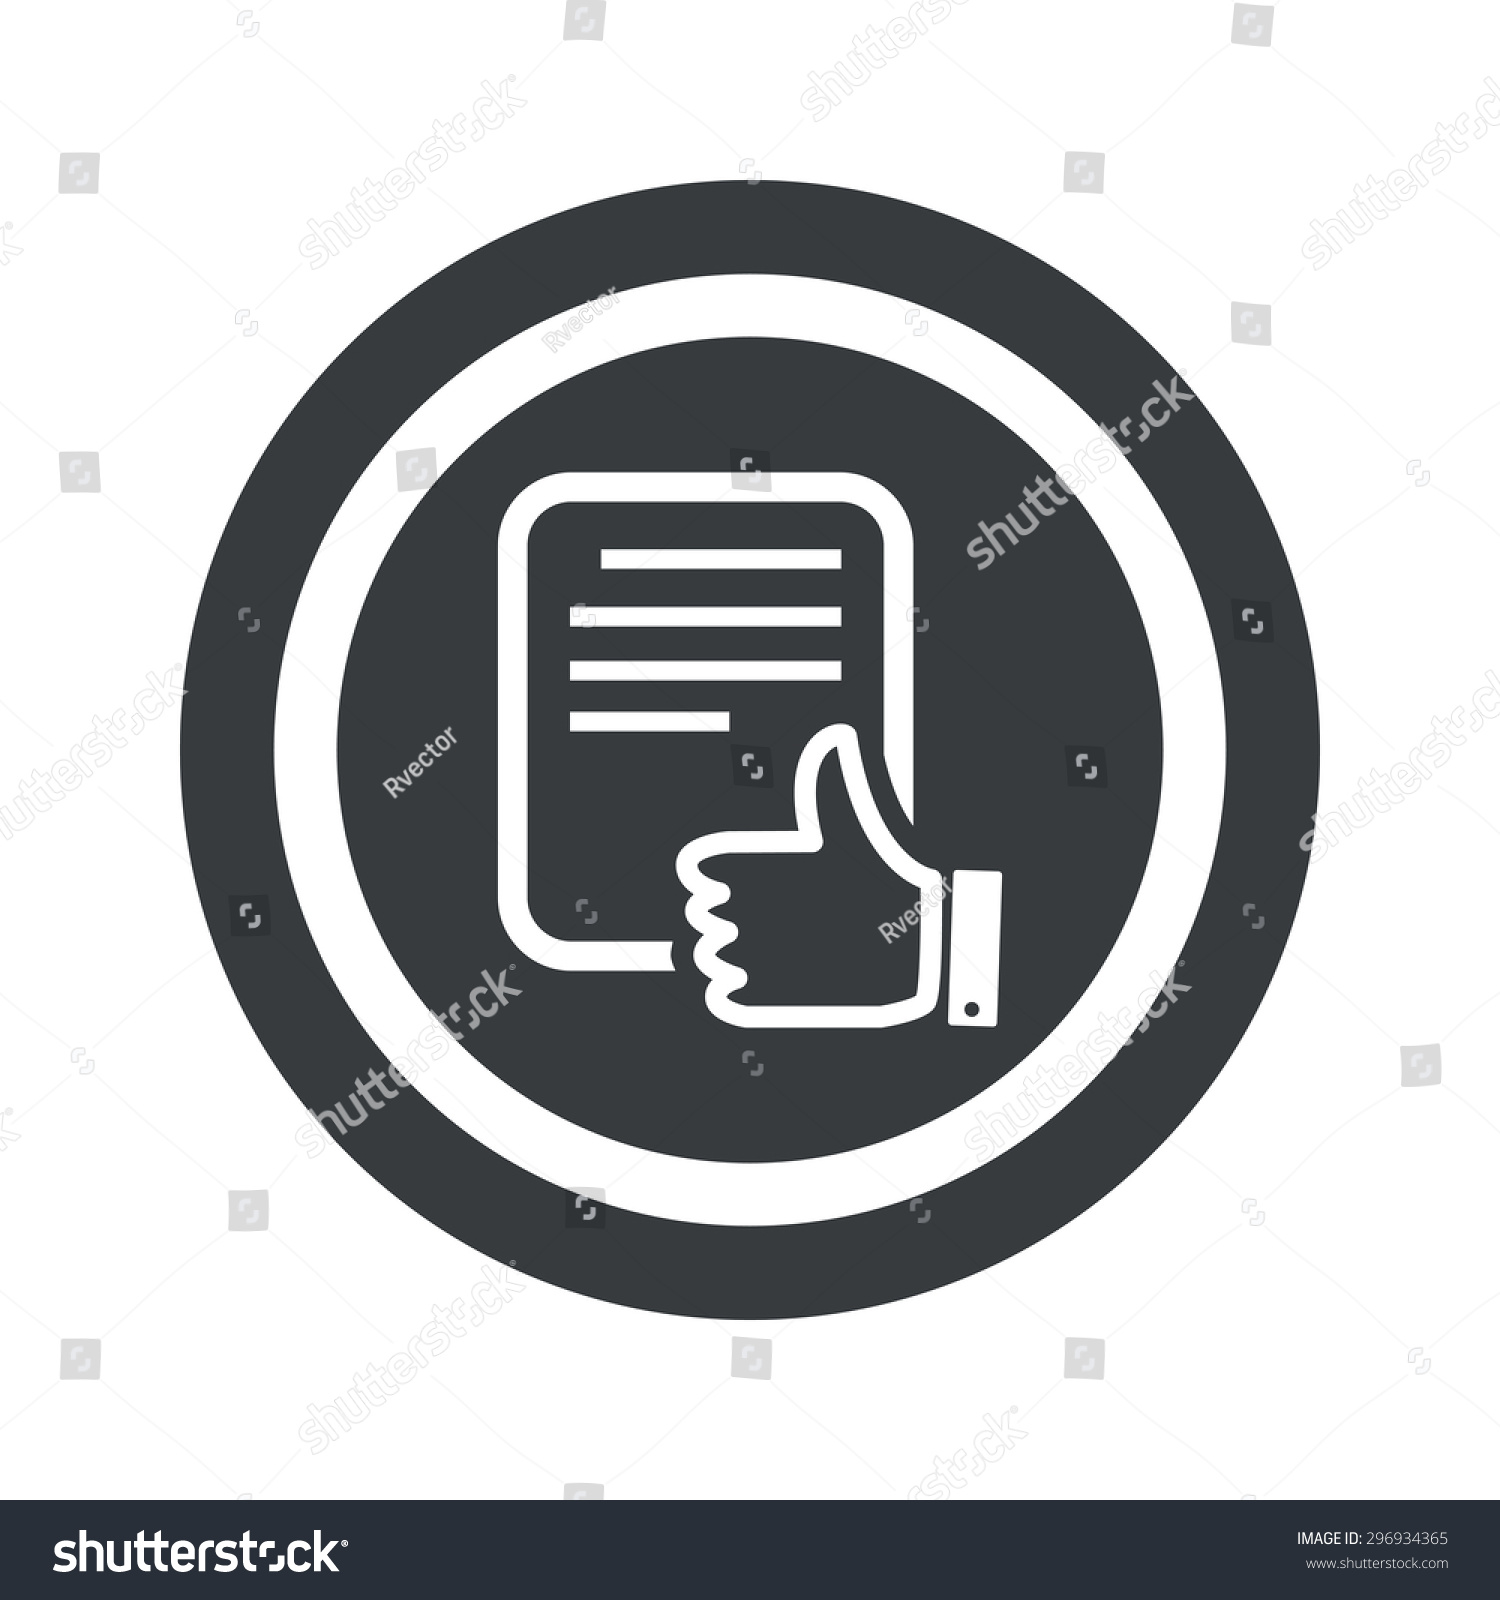 Document page like symbol circle on stock vector 296934365 document page with like symbol in circle on black circle isolated on white buycottarizona Choice Image